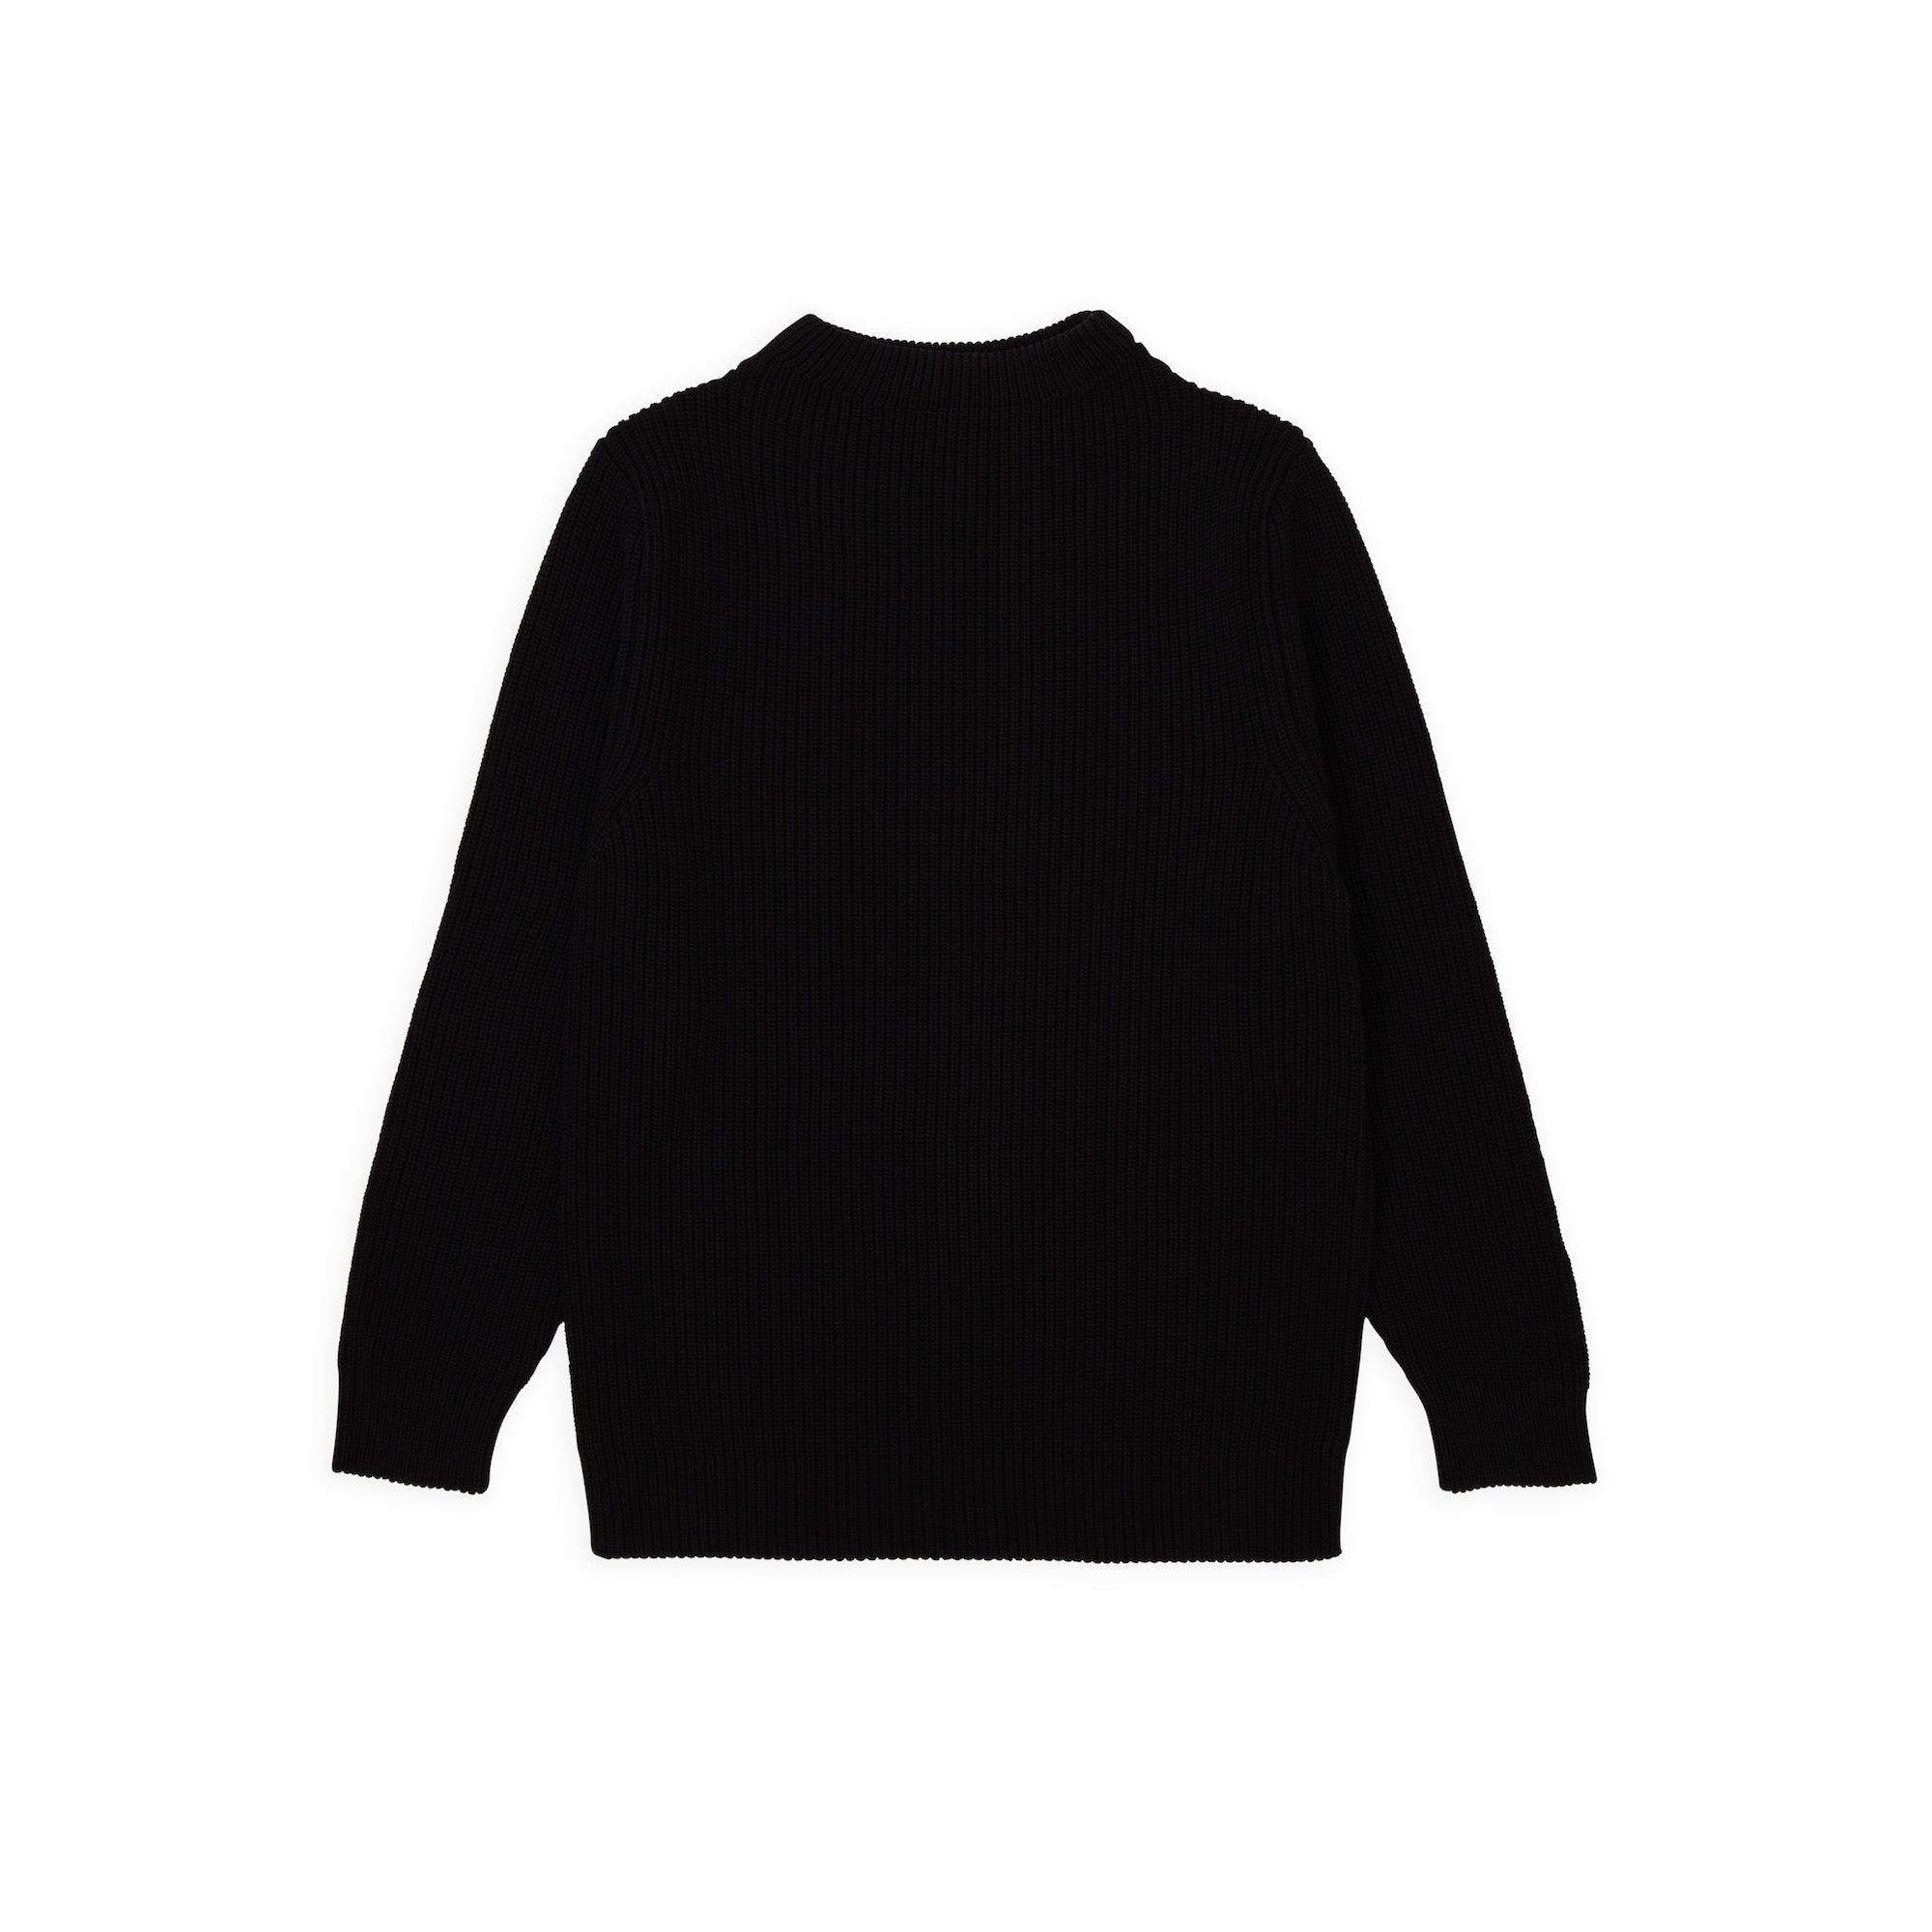 Cotton Crewneck - Black